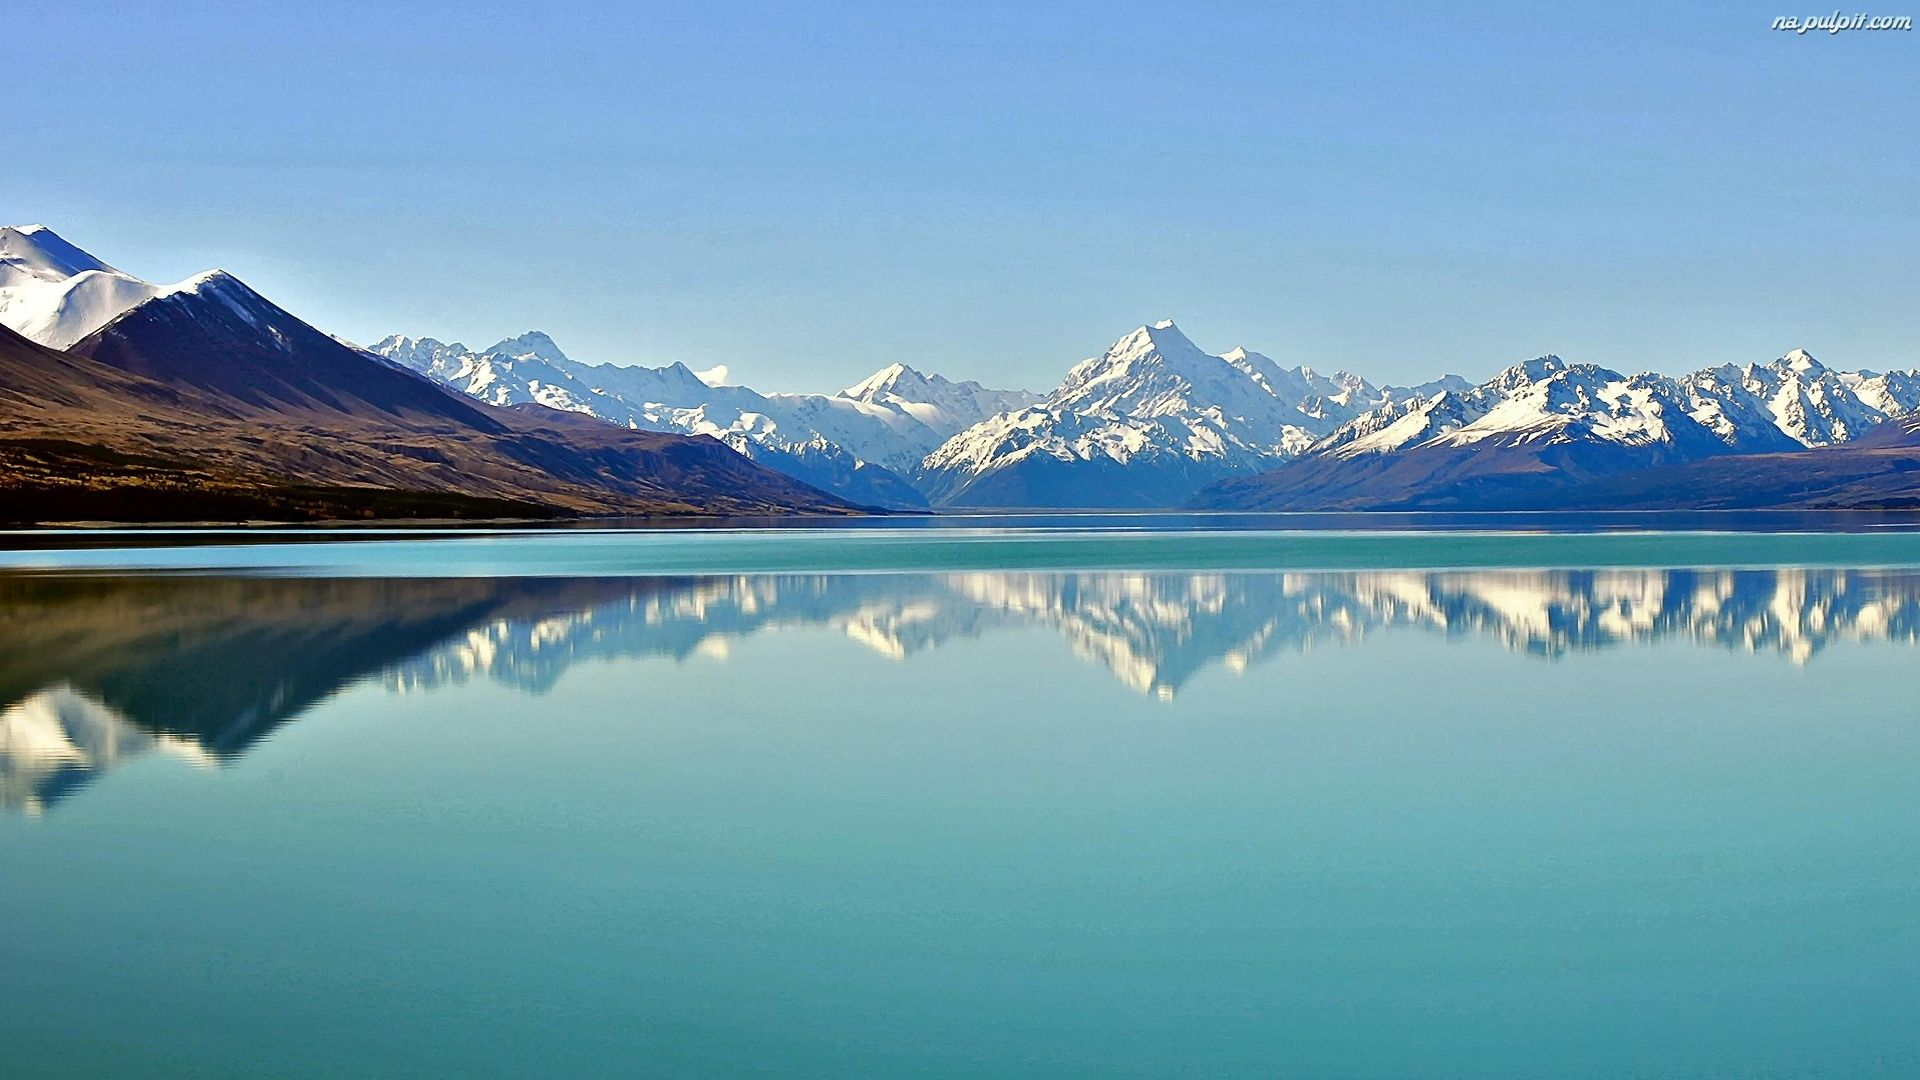 New Zealand Landscapes 1920x1080 I Redd It Submitted By Josephkuma01 To R Wallpapers 0 Comments Original Nature Hd Nature Wallpaper Timeline Cover Photos